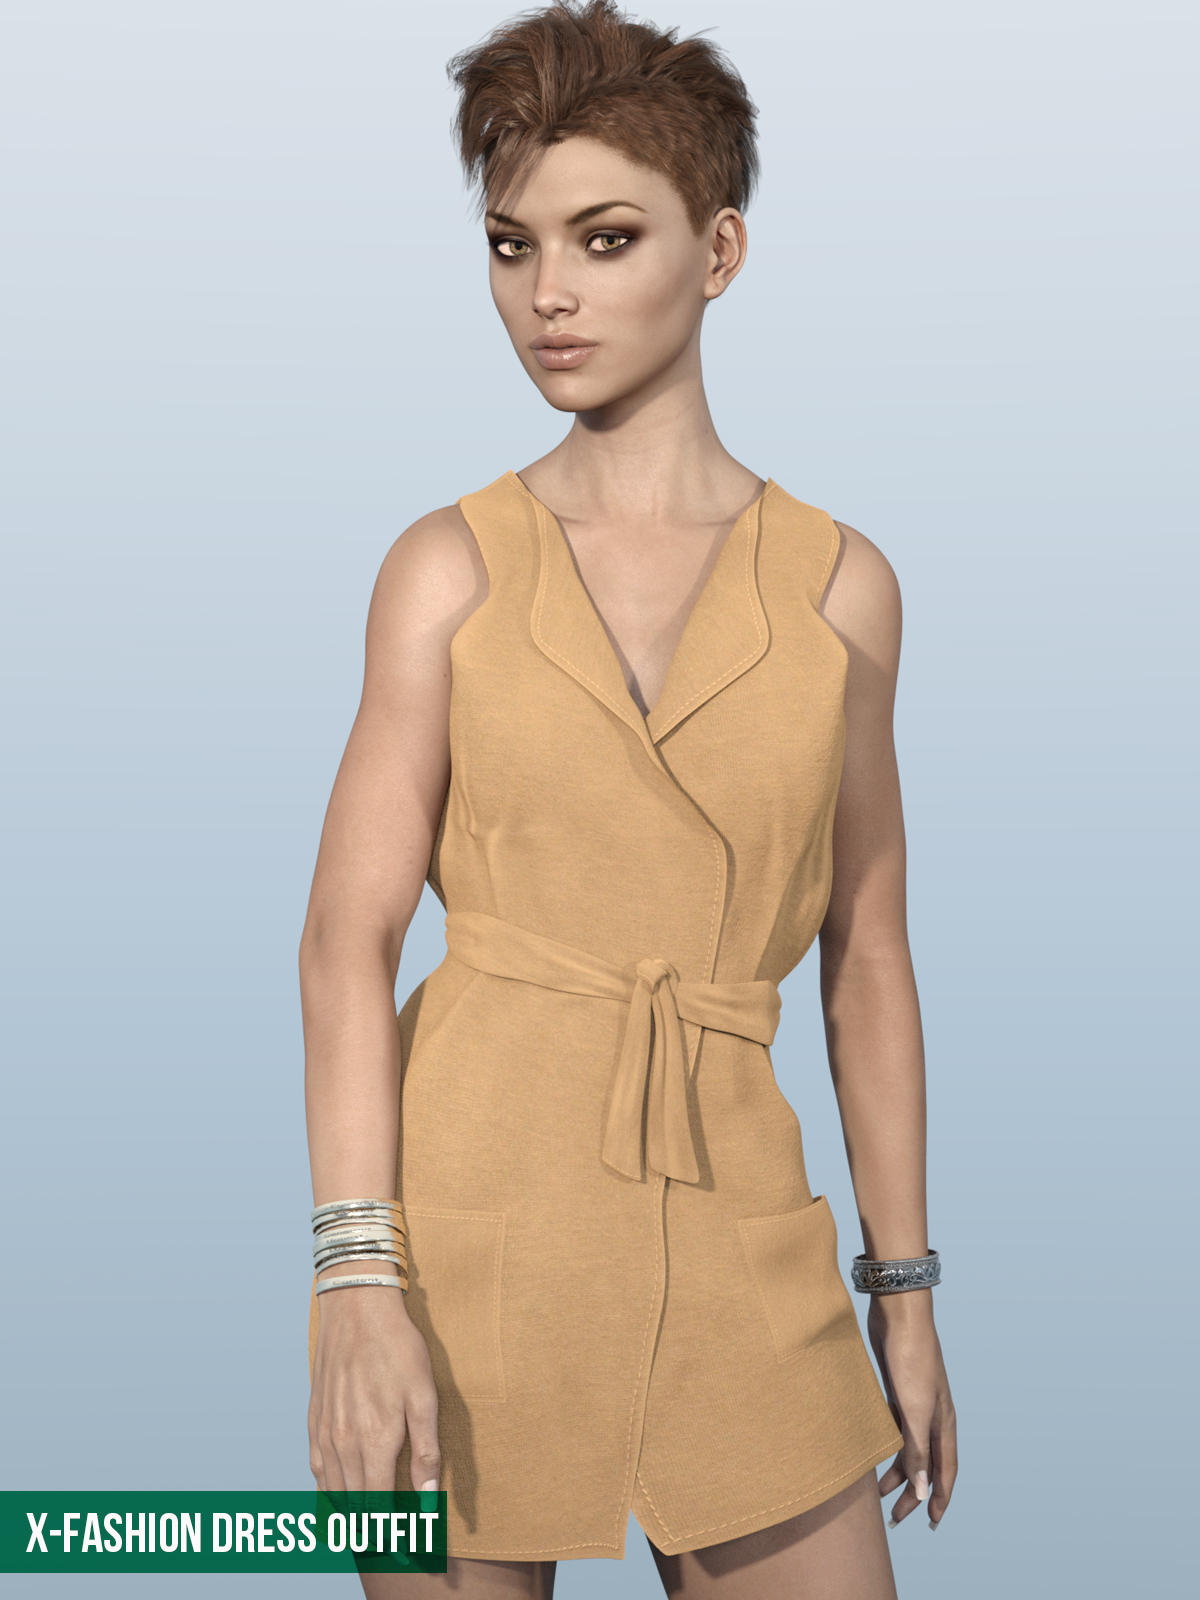 Fashion Dress Outfit for Genesis 3 Females